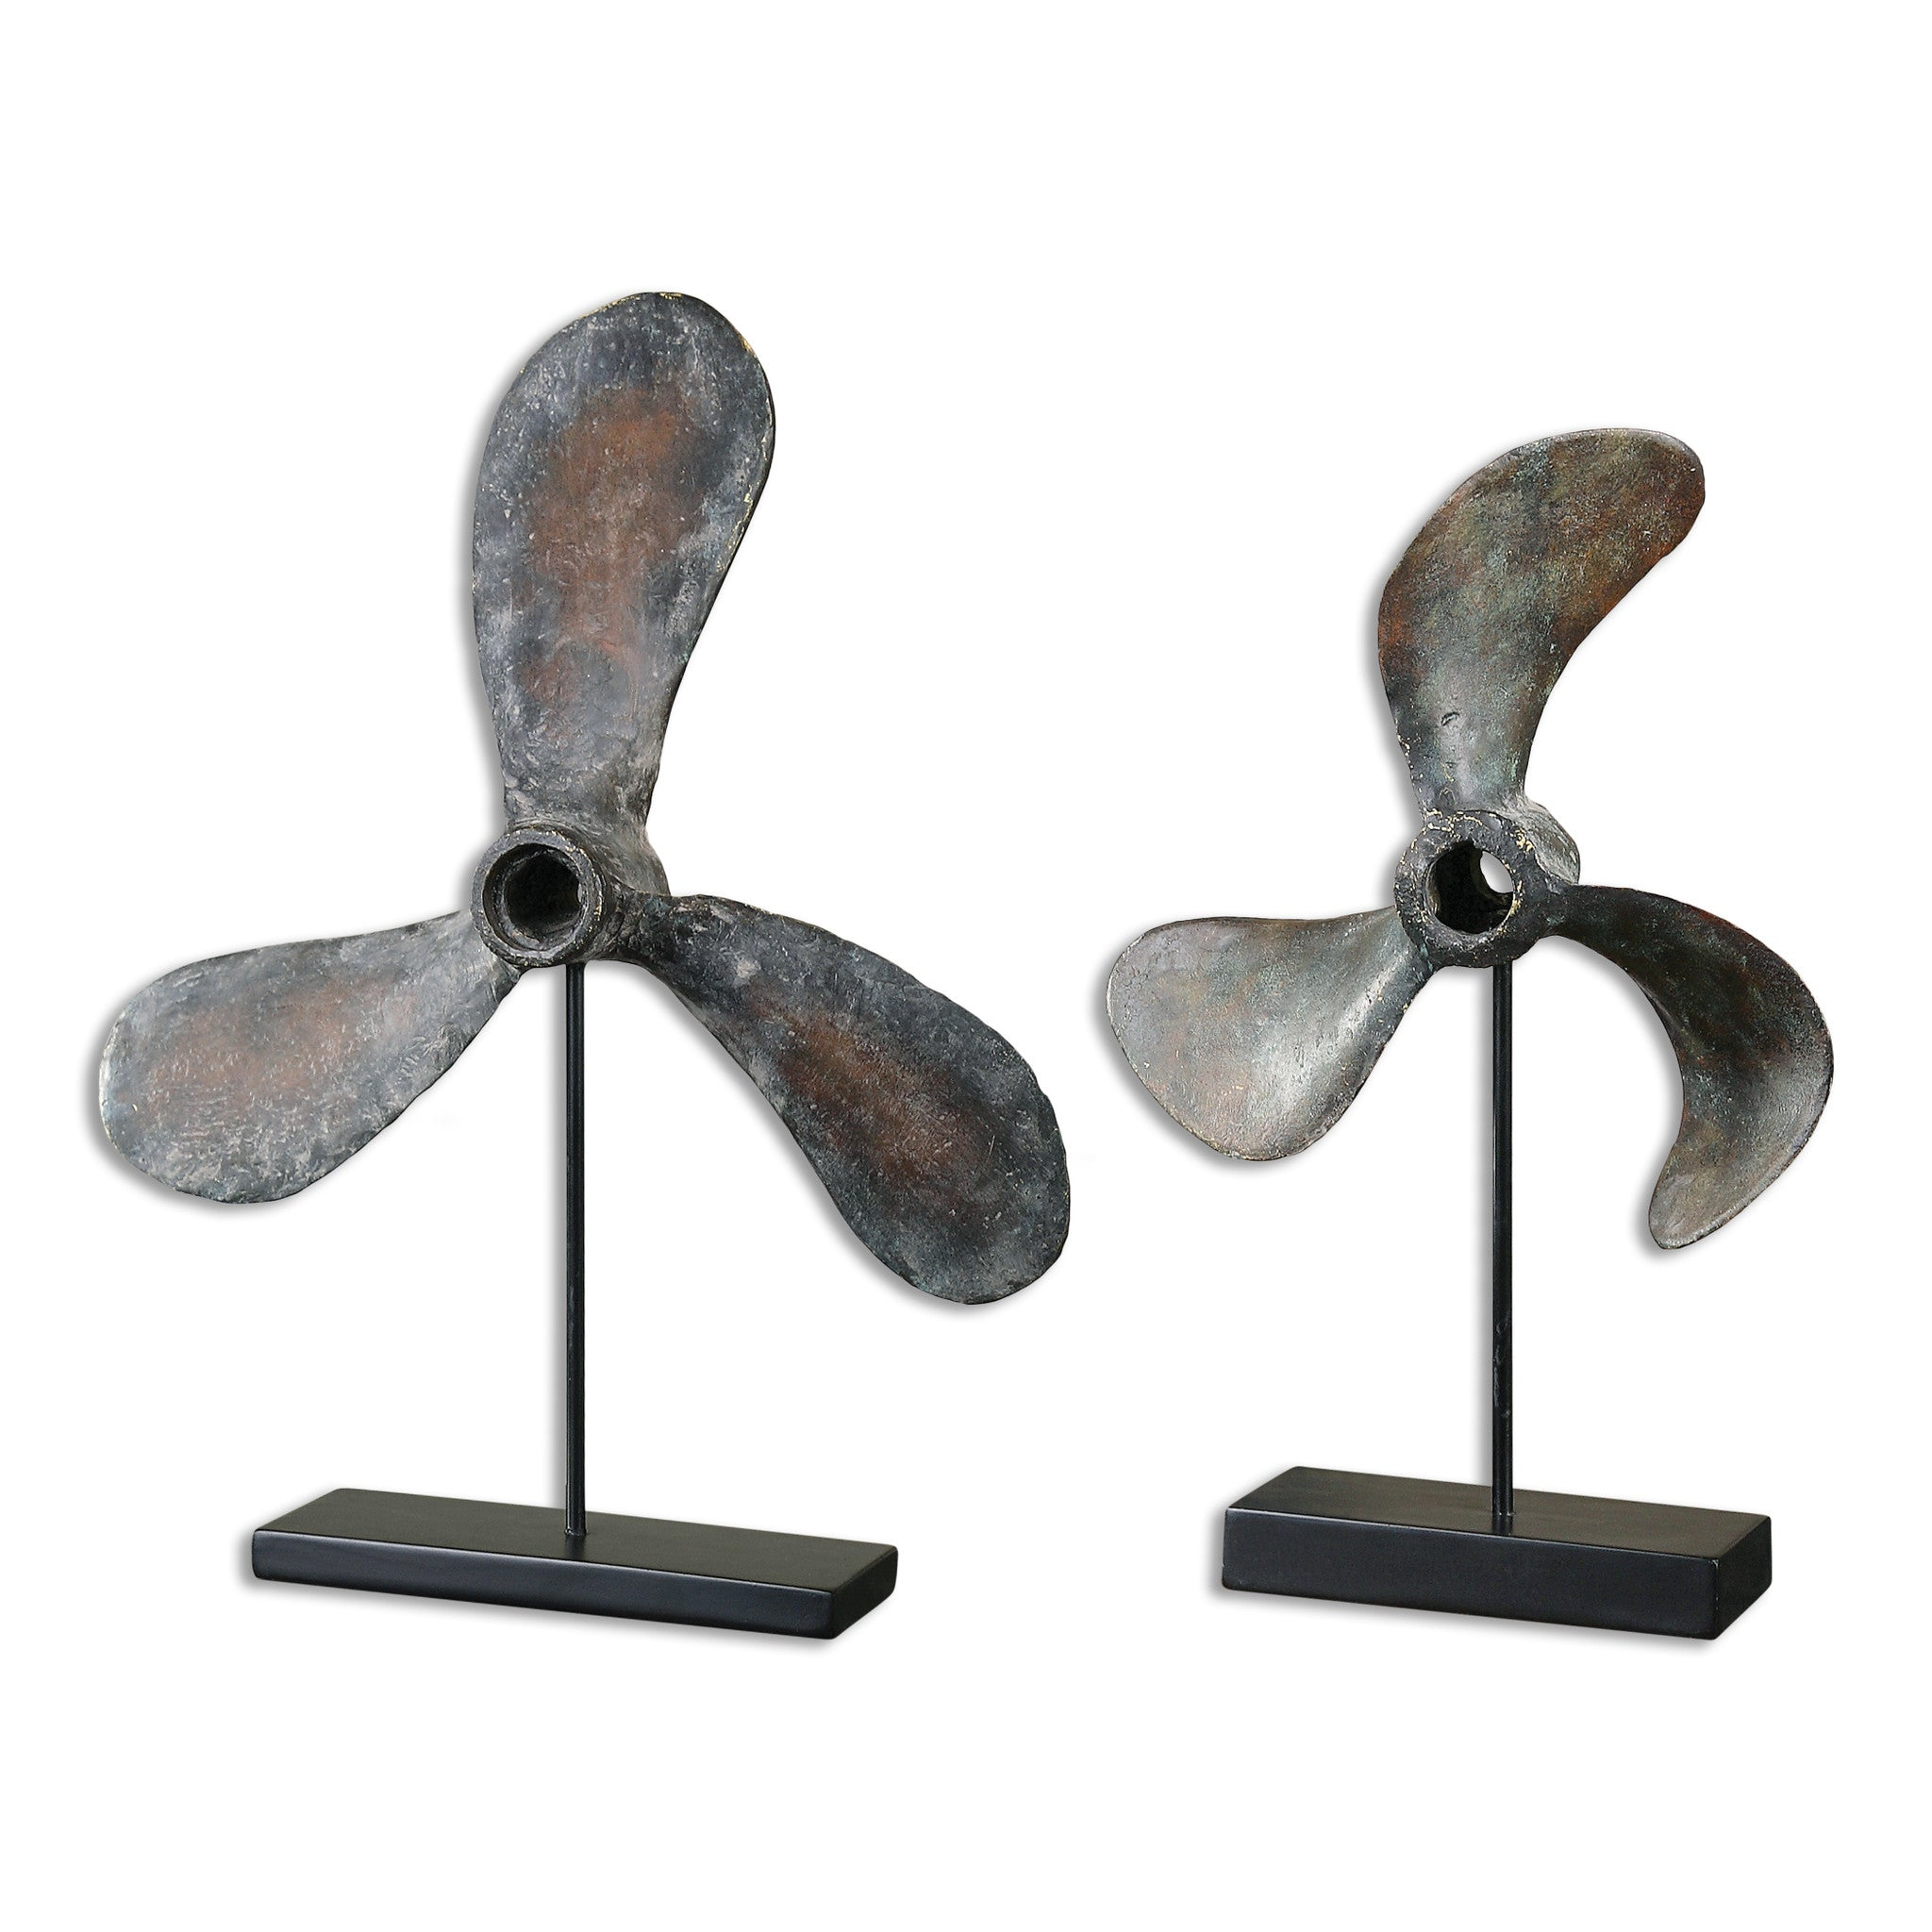 Sculptures of vintage propellers